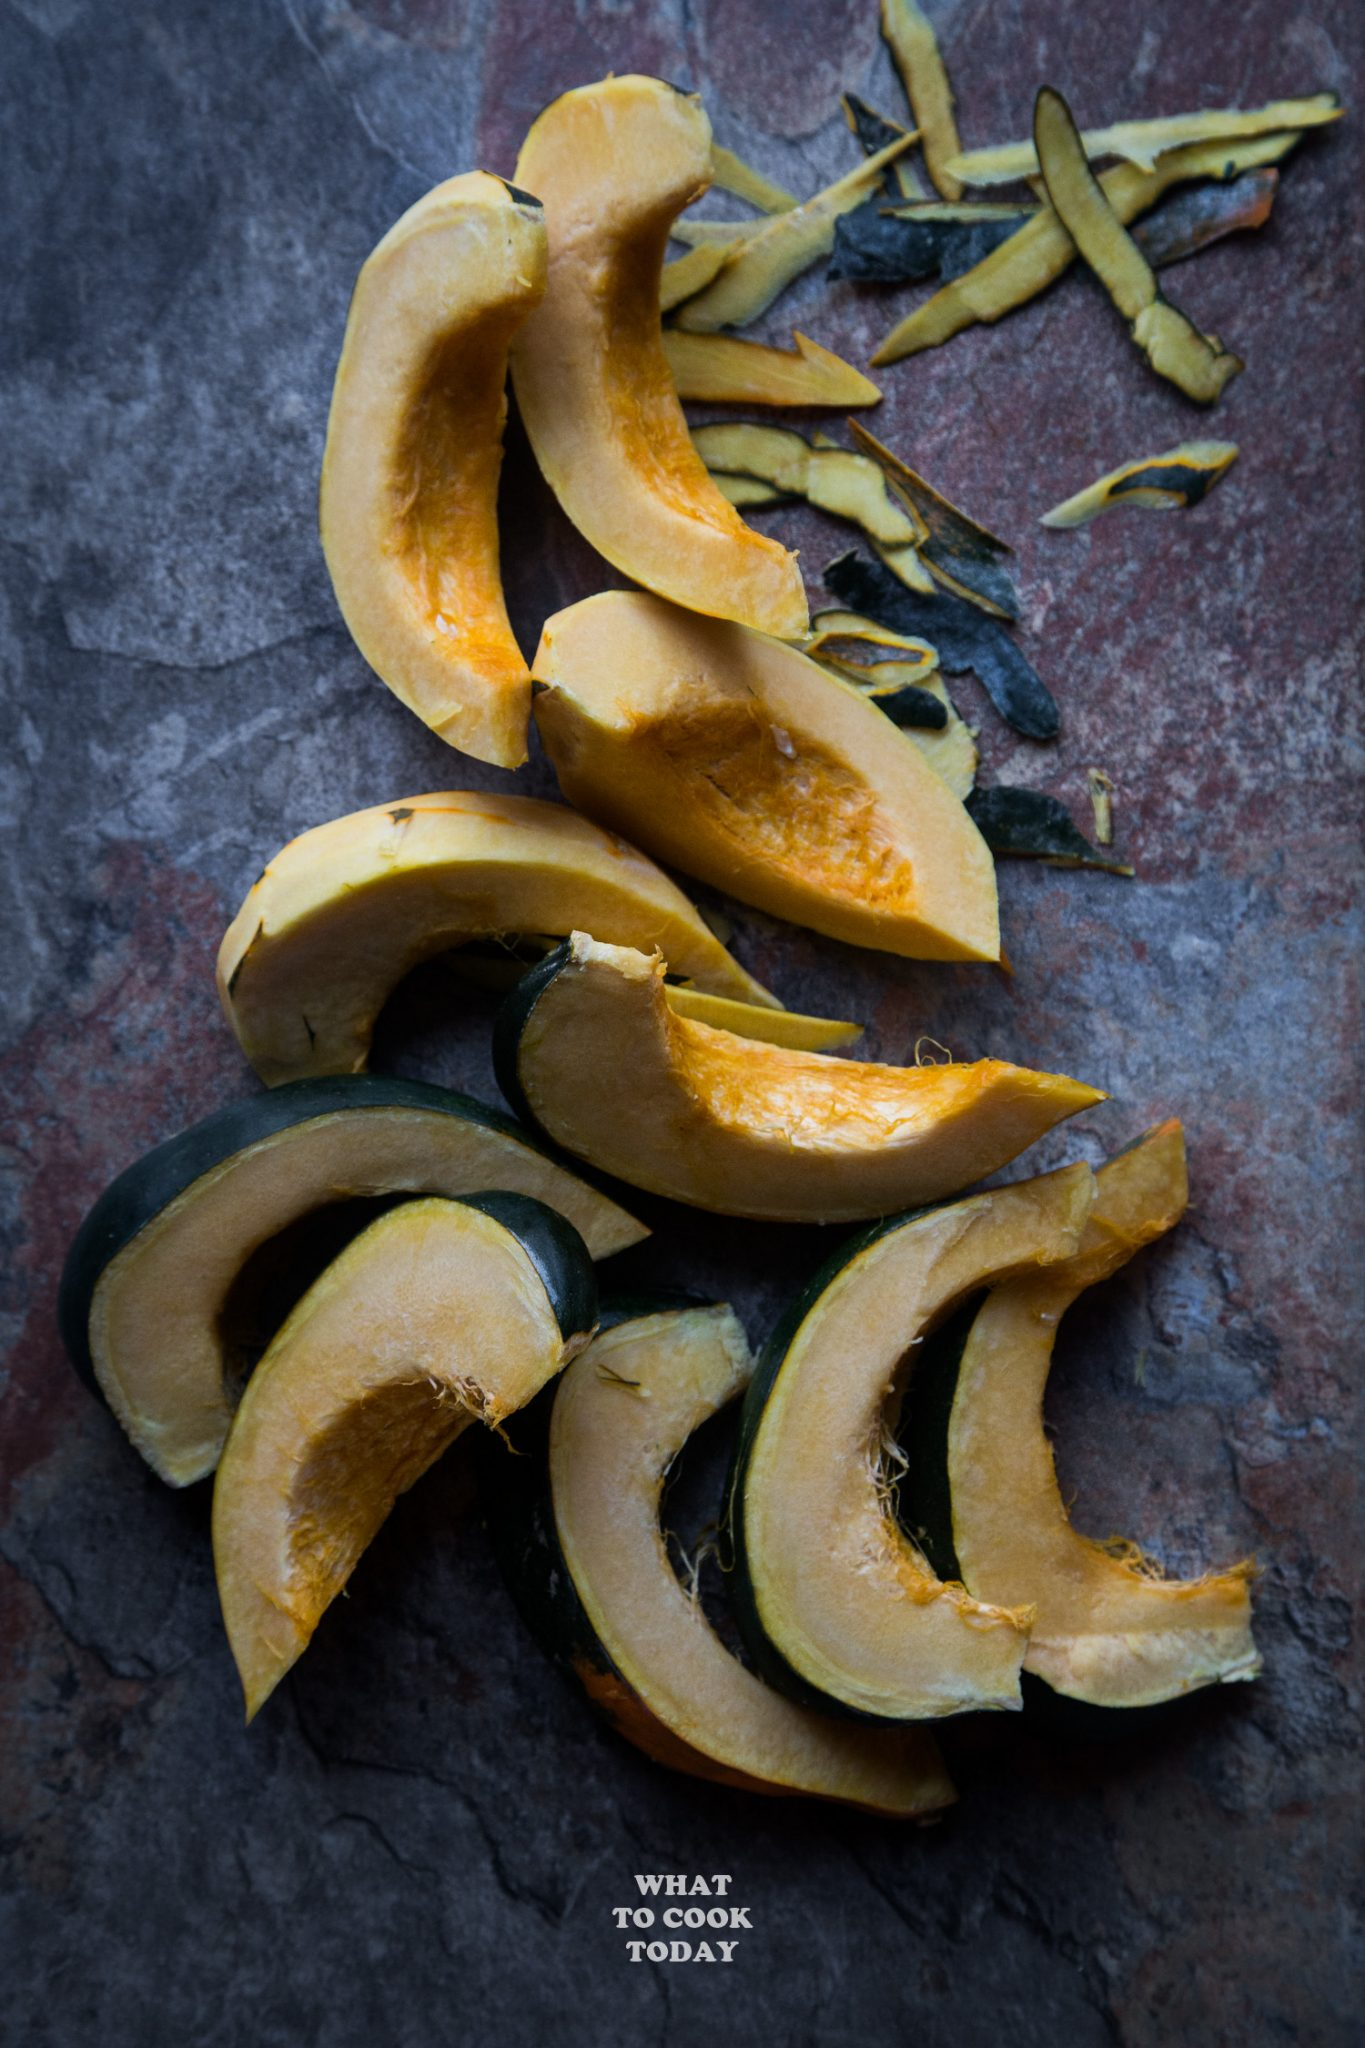 Acorn squash deseeded and cut into slices